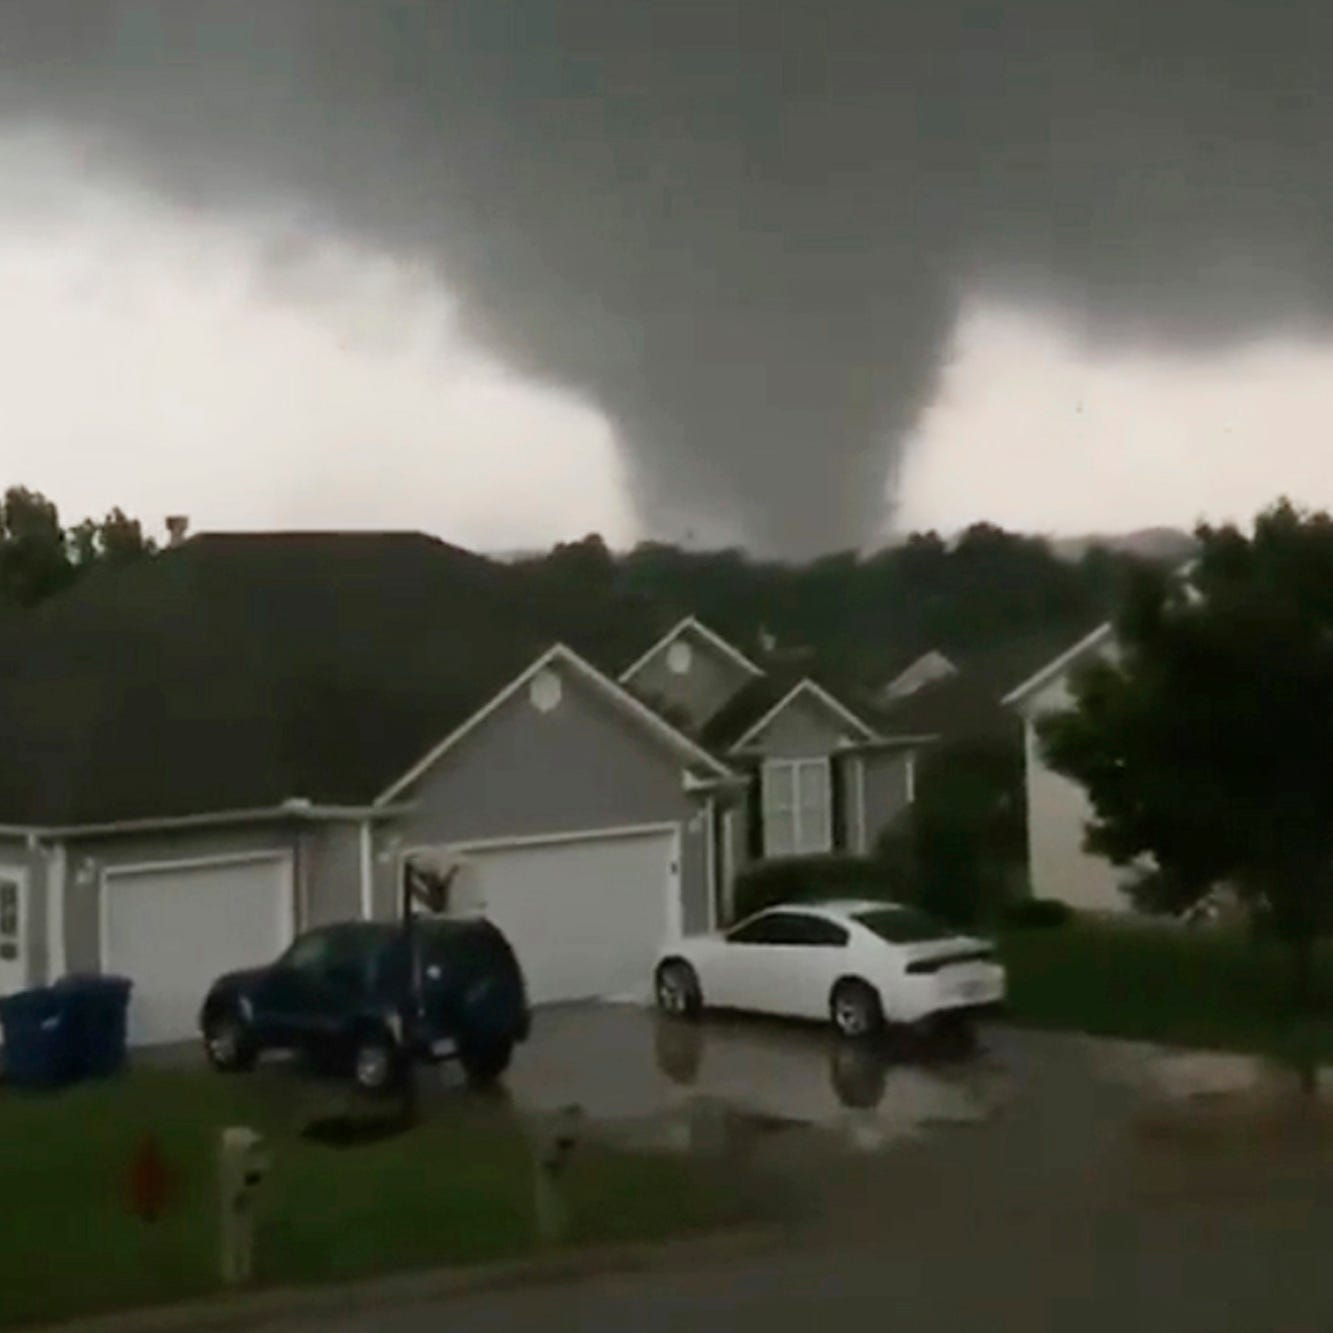 'Chaotic situation' as tornado tears through Missouri's capital of Jefferson City